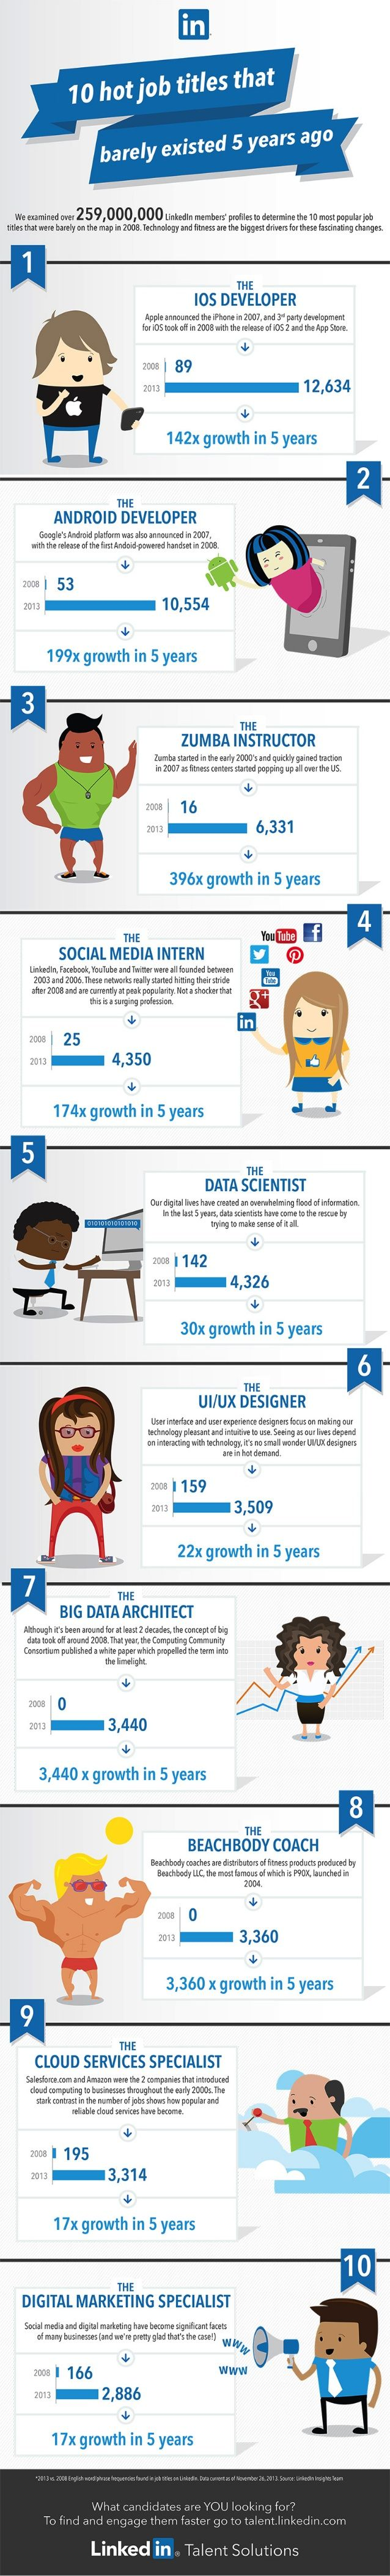 10 Job Titles That Didn't Exist 5 Years Ago | Infographic by LinkedIn Talent Solutions via slideshare